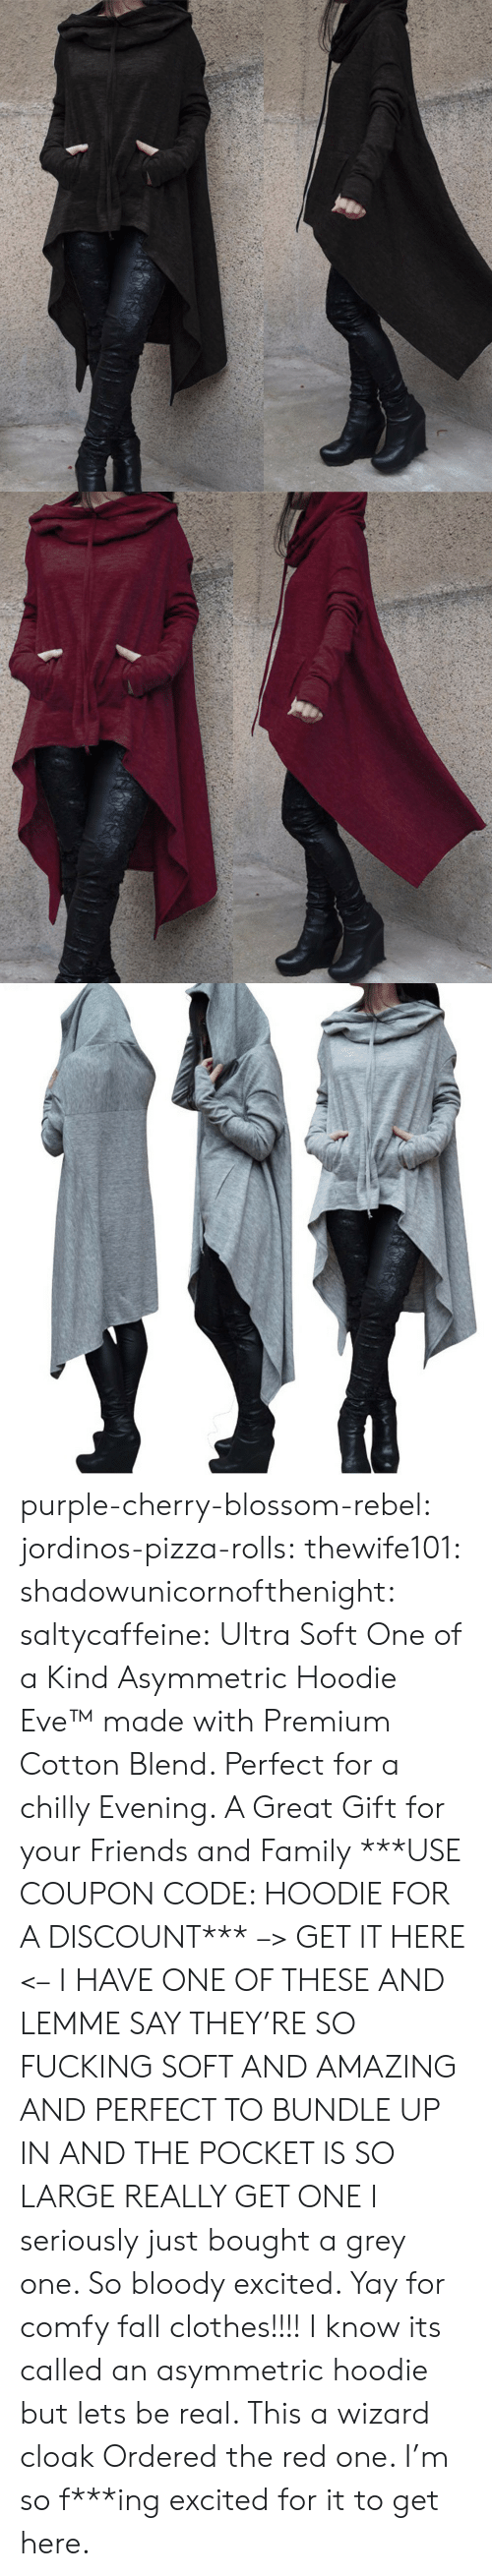 bundle up: purple-cherry-blossom-rebel:  jordinos-pizza-rolls:  thewife101:  shadowunicornofthenight:  saltycaffeine:  Ultra Soft One of a Kind Asymmetric Hoodie Eve™made with Premium Cotton Blend. Perfect for a chilly Evening. A Great Gift for your Friends and Family ***USE COUPON CODE: HOODIE FOR A DISCOUNT*** –> GET IT HERE <–   I HAVE ONE OF THESE AND LEMME SAY THEY'RE SO FUCKING SOFT AND AMAZING AND PERFECT TO BUNDLE UP IN AND THE POCKET IS SO LARGE REALLY GET ONE   I seriously just bought a grey one. So bloody excited. Yay for comfy fall clothes!!!!    I know its called an asymmetric hoodie but lets be real. This a wizard cloak   Ordered the red one. I'm so f***ing excited for it to get here.